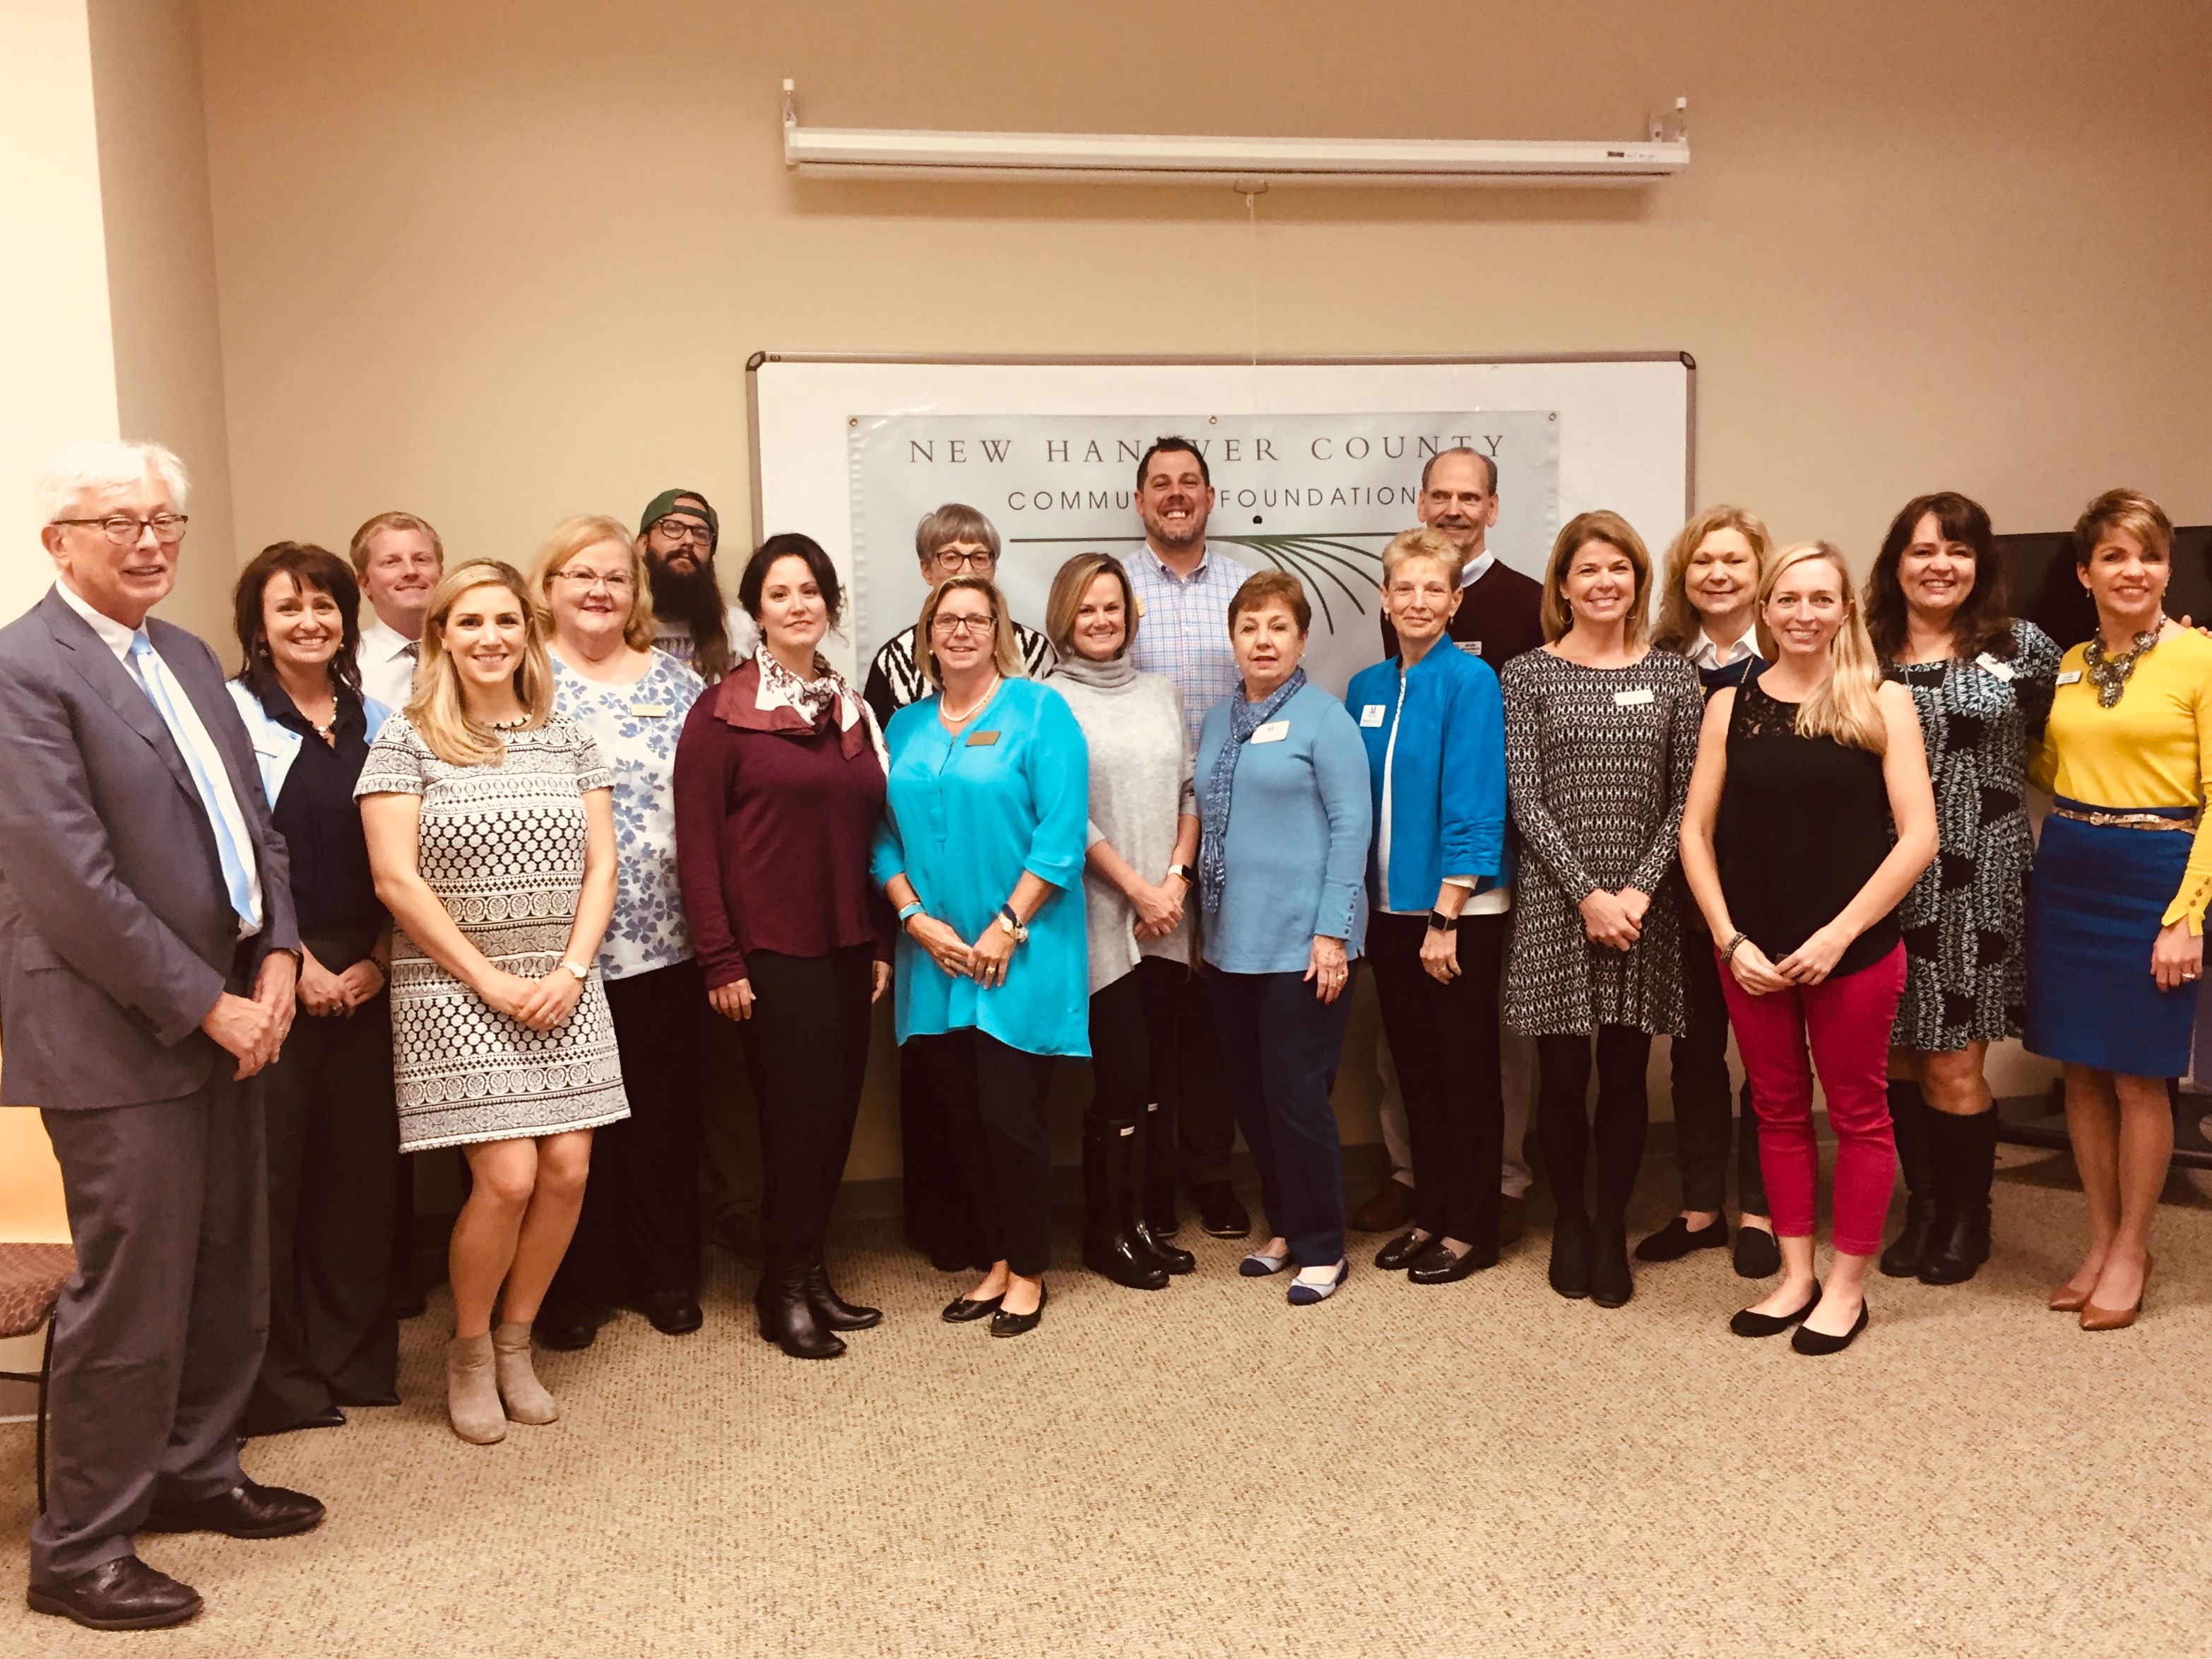 New Hanover County Community Foundation board members and grantee representatives gather for a photo at this year's grant awards ceremony where $47,000 in local grants were awarded.